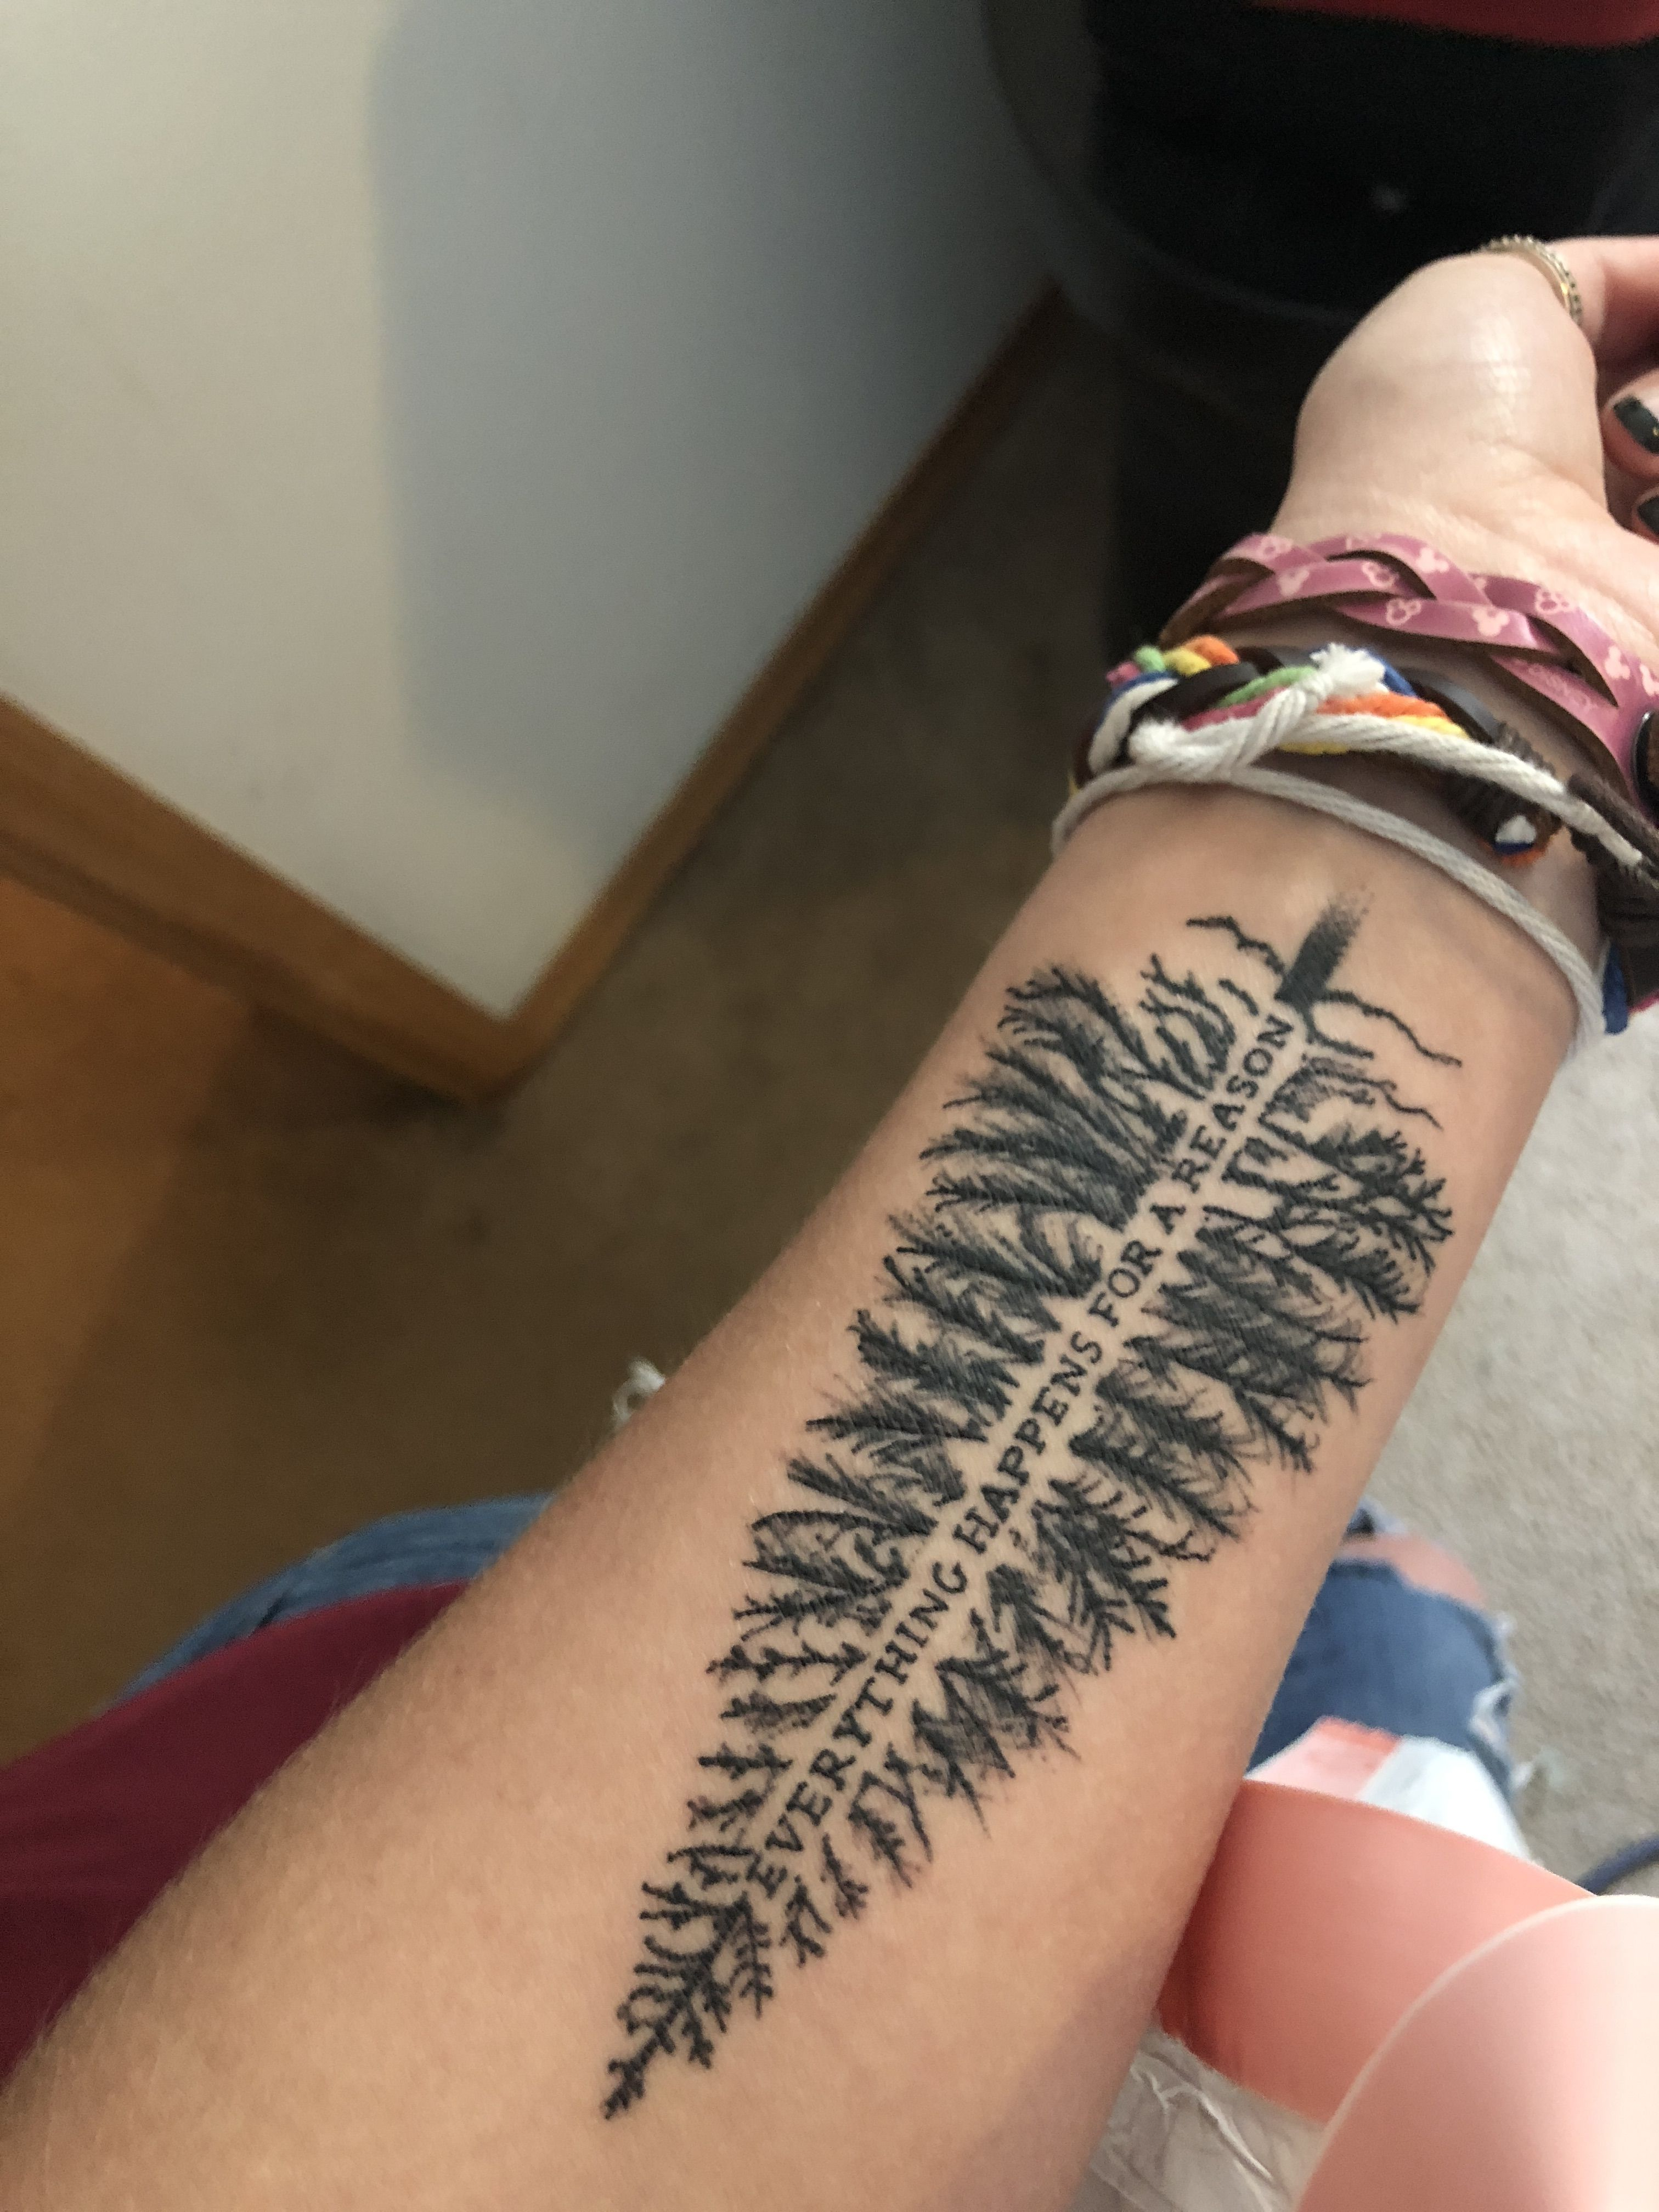 d6749ae50 My newest tattoo, perfect for Oregon lovers and open-minded people.  everything happens for a reason. Completely original. Had an amazing artist  make the ...